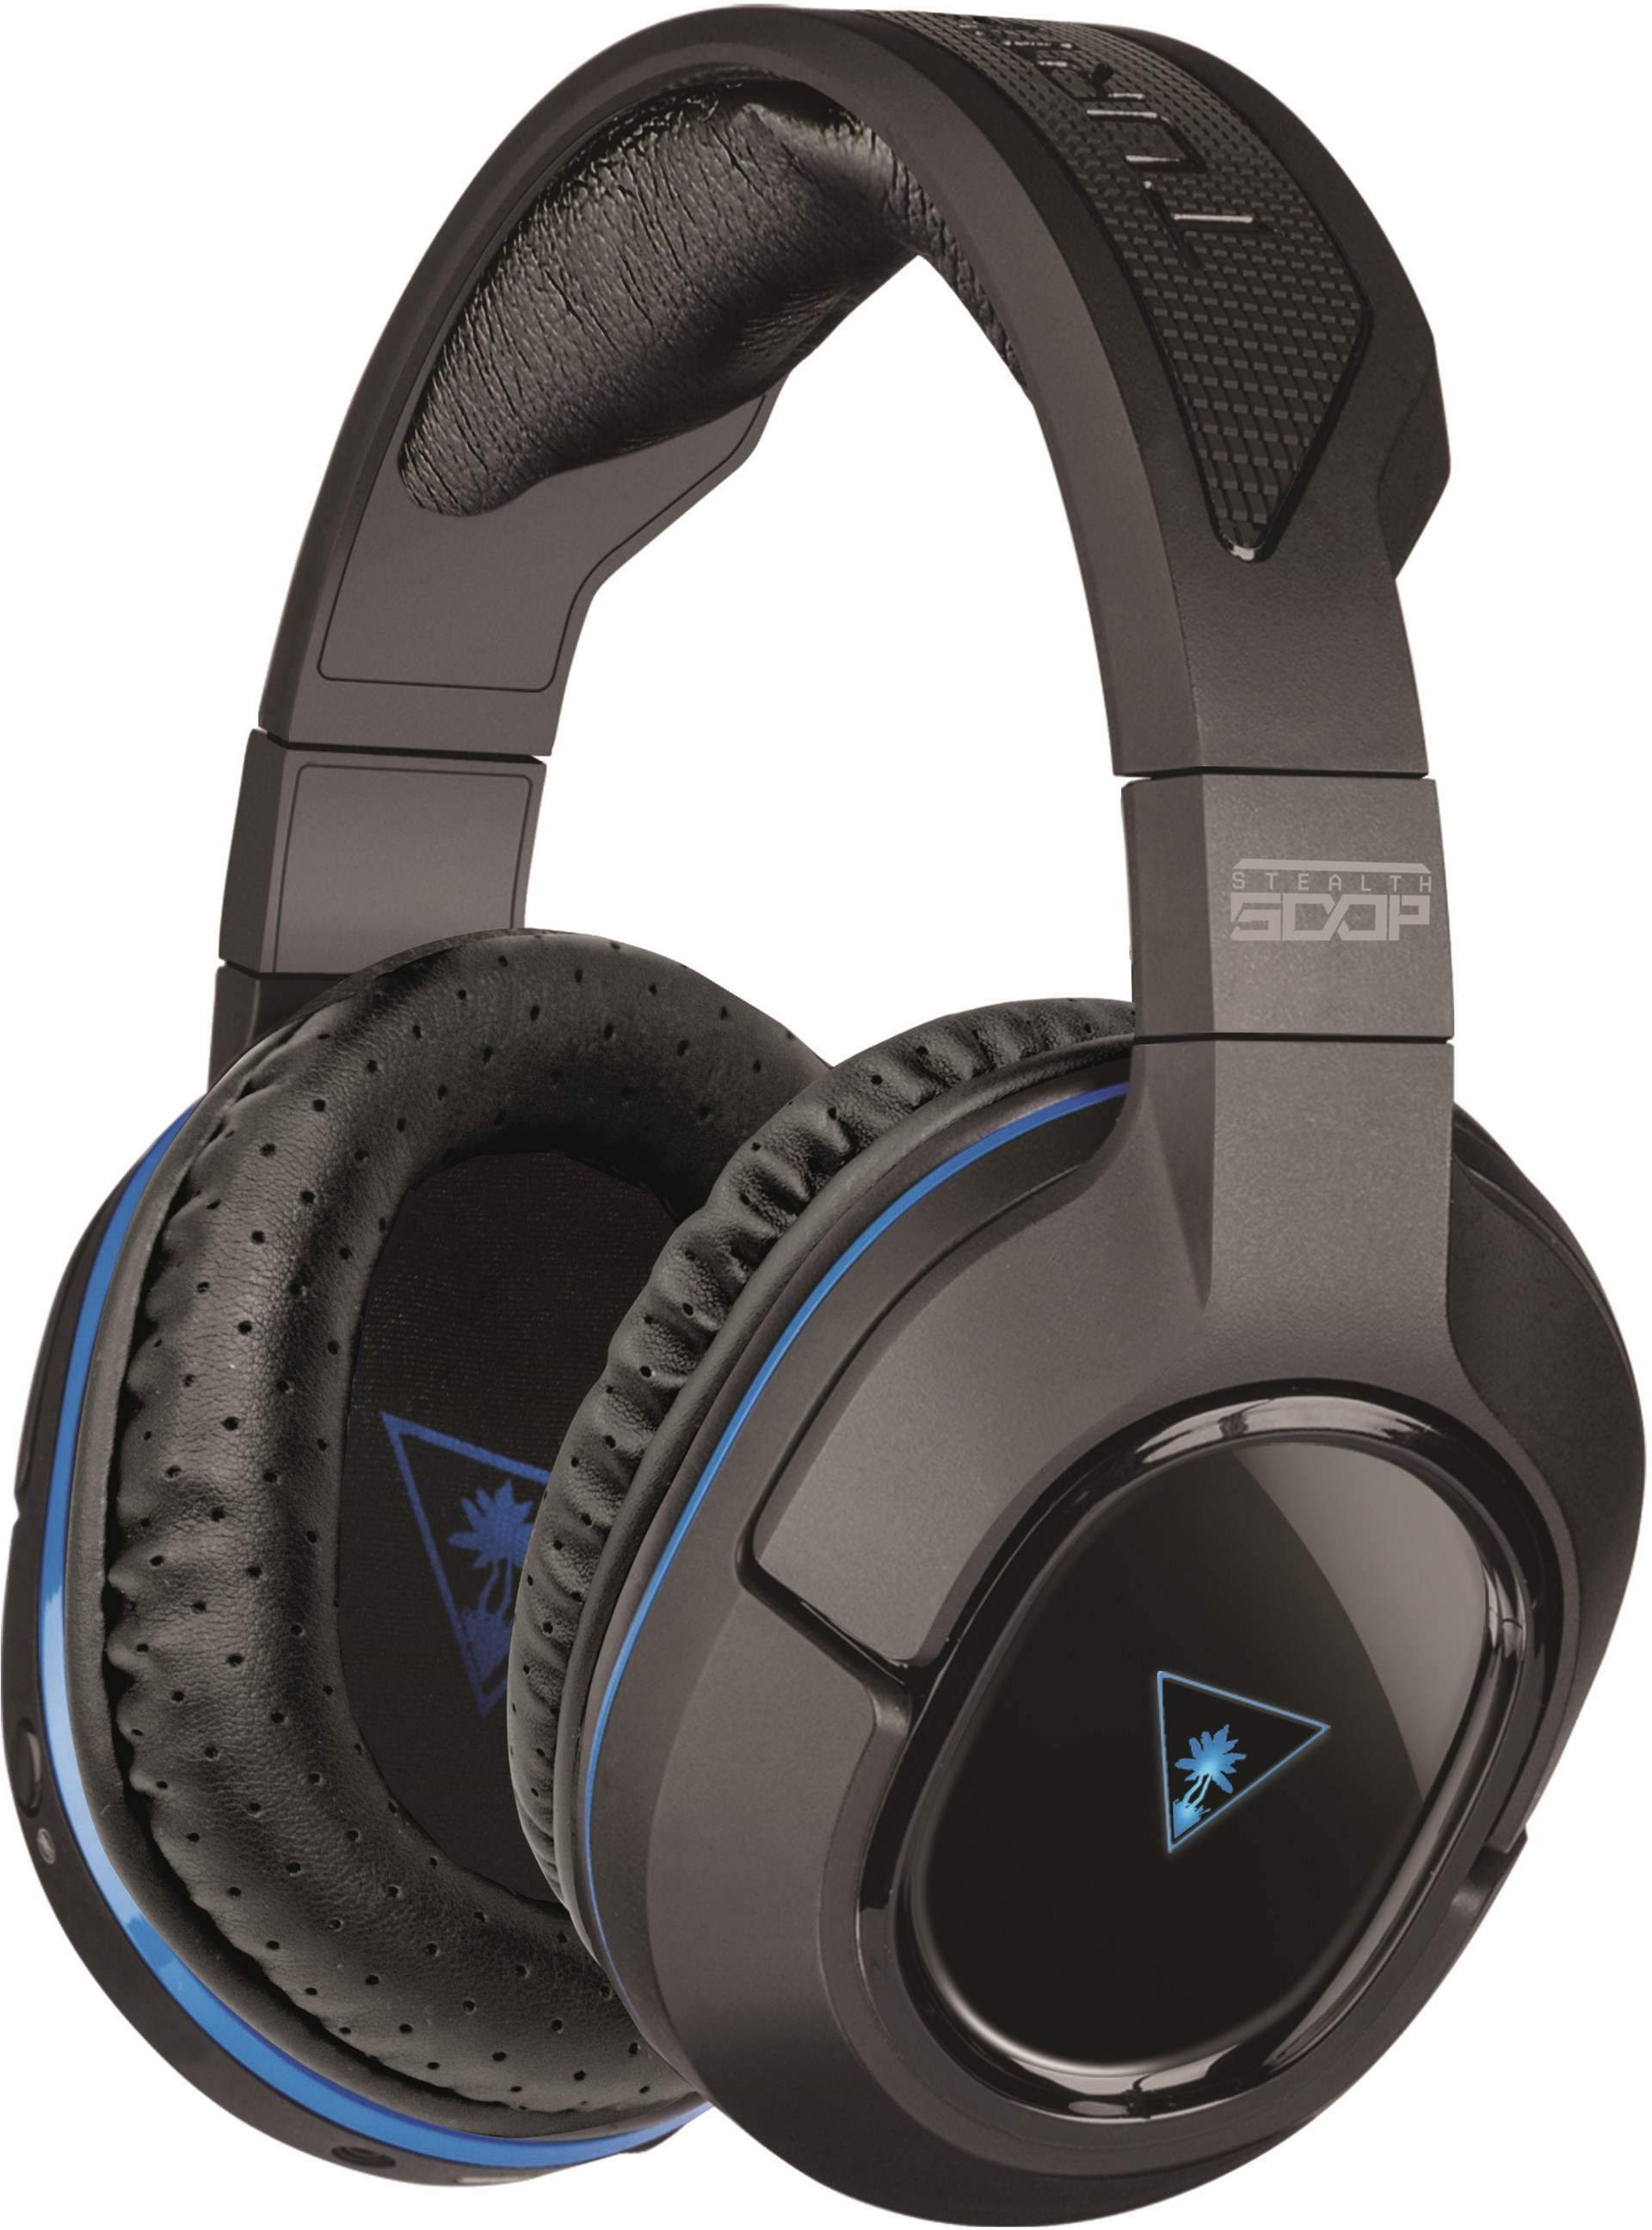 turtle beach stealth 500p headset ps4 ps3 tr dl st. Black Bedroom Furniture Sets. Home Design Ideas